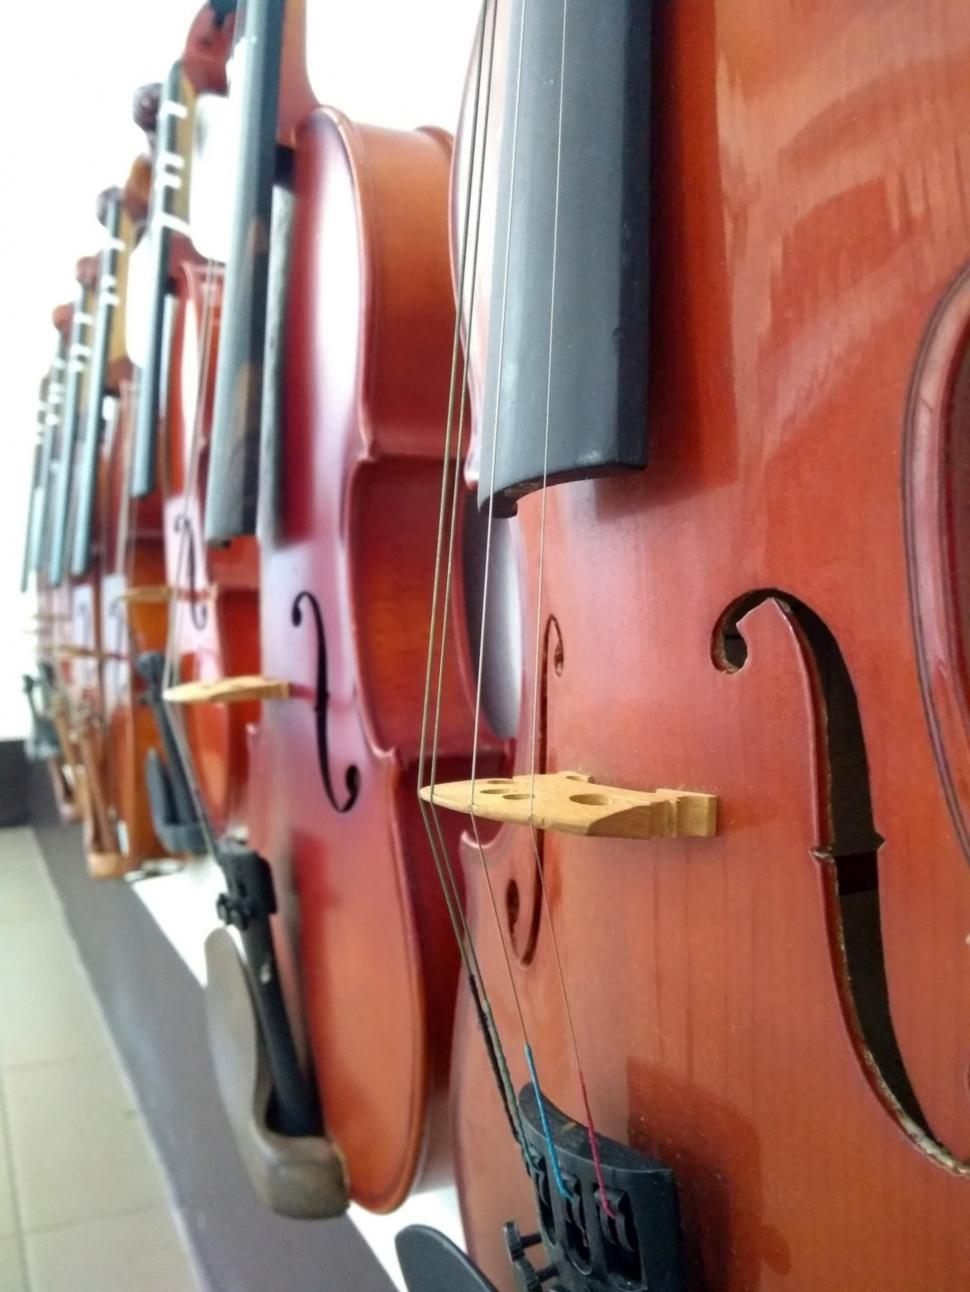 Download Free Stock HD Photo of Close up of a row of violins  Online